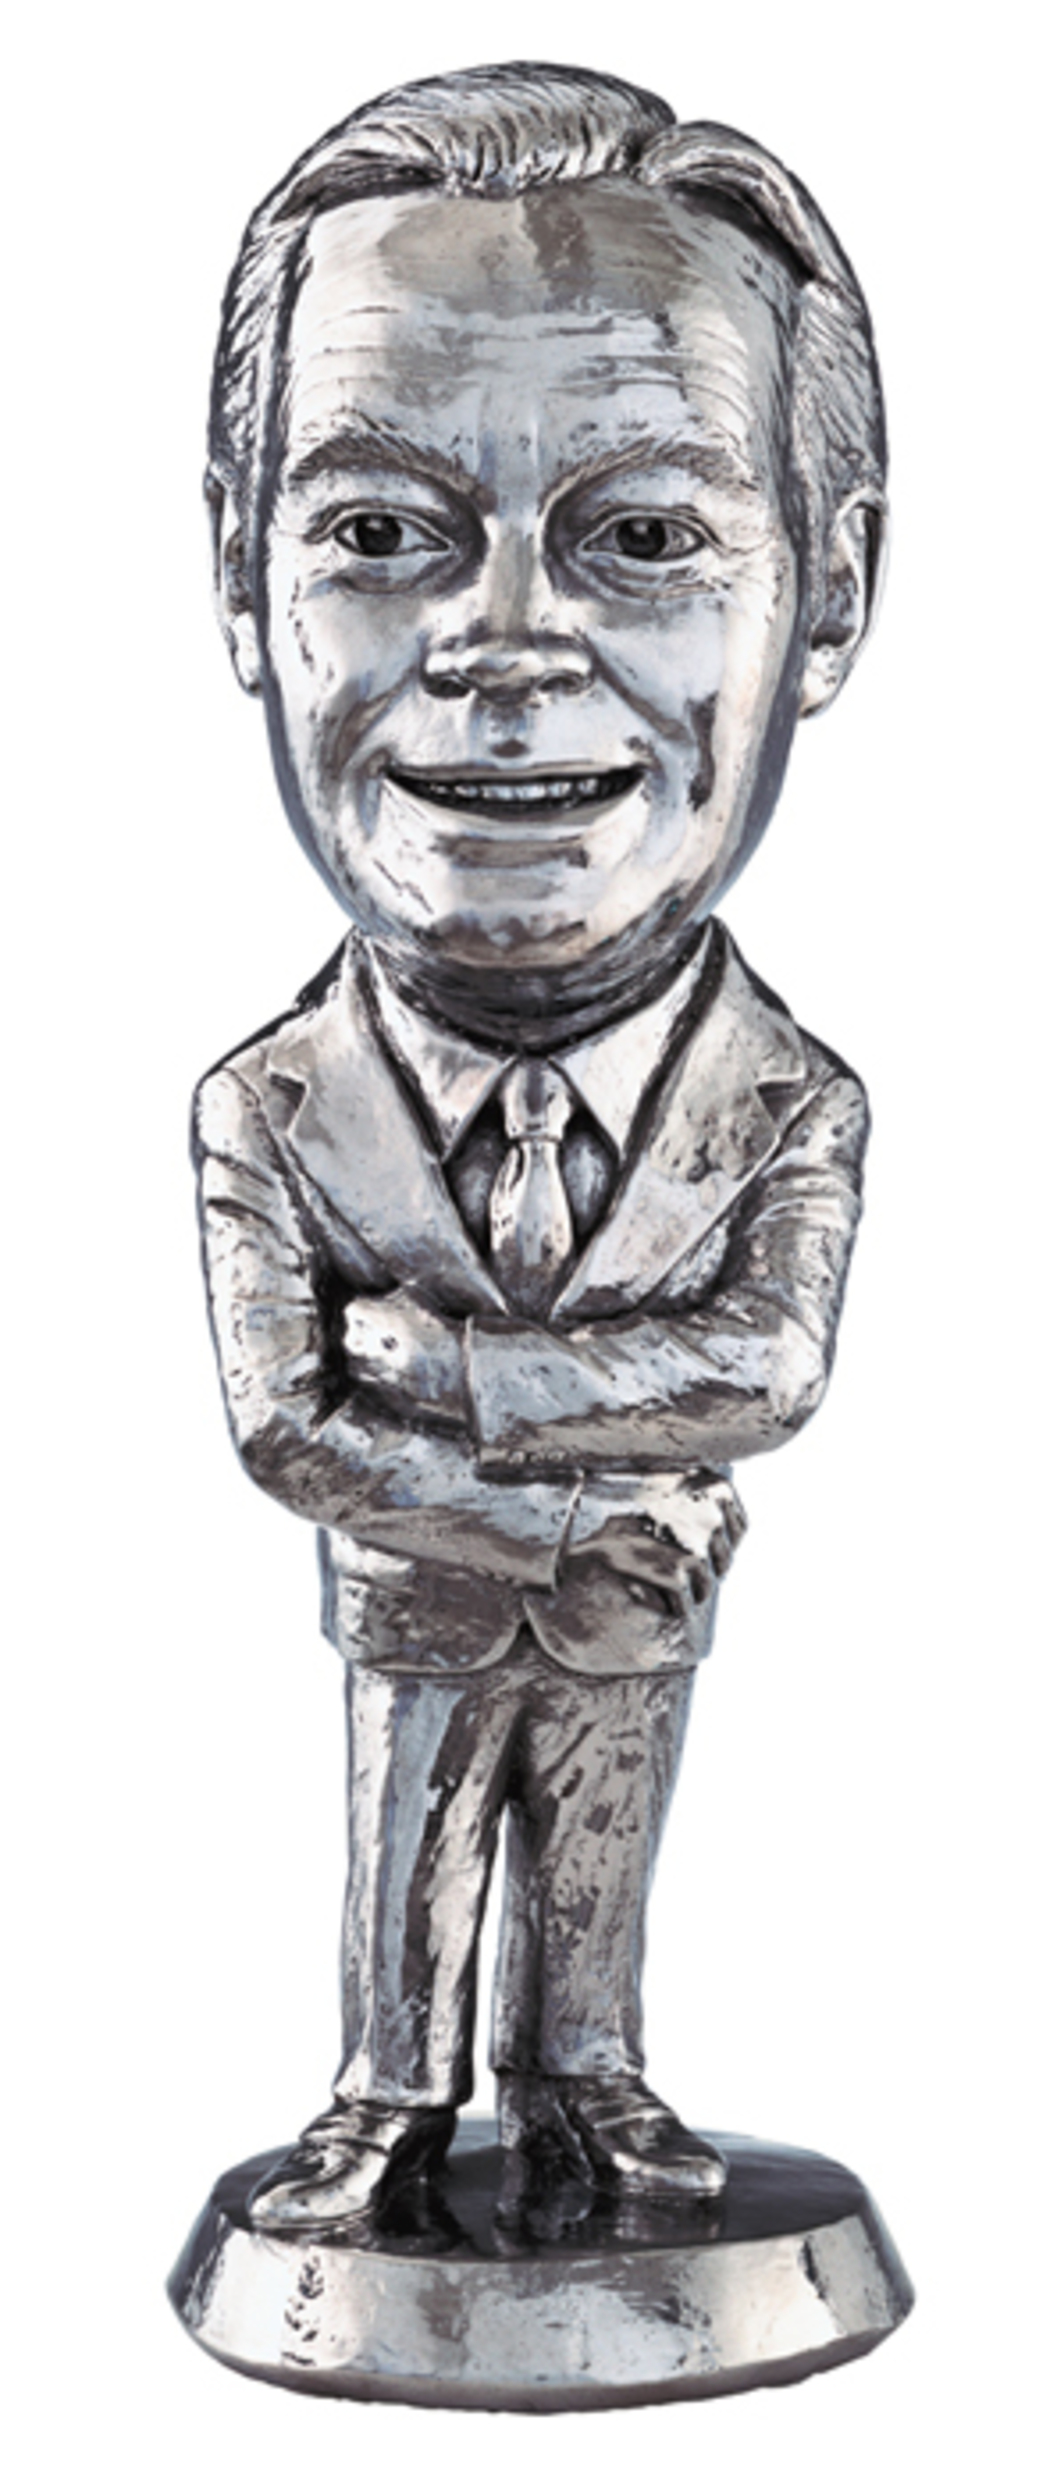 "Jeff Koons, Bob Hope, 1986, stainless steel, 17 × 5 1/2 × 5 1/2"". From the series ""Statuary,"" 1986."